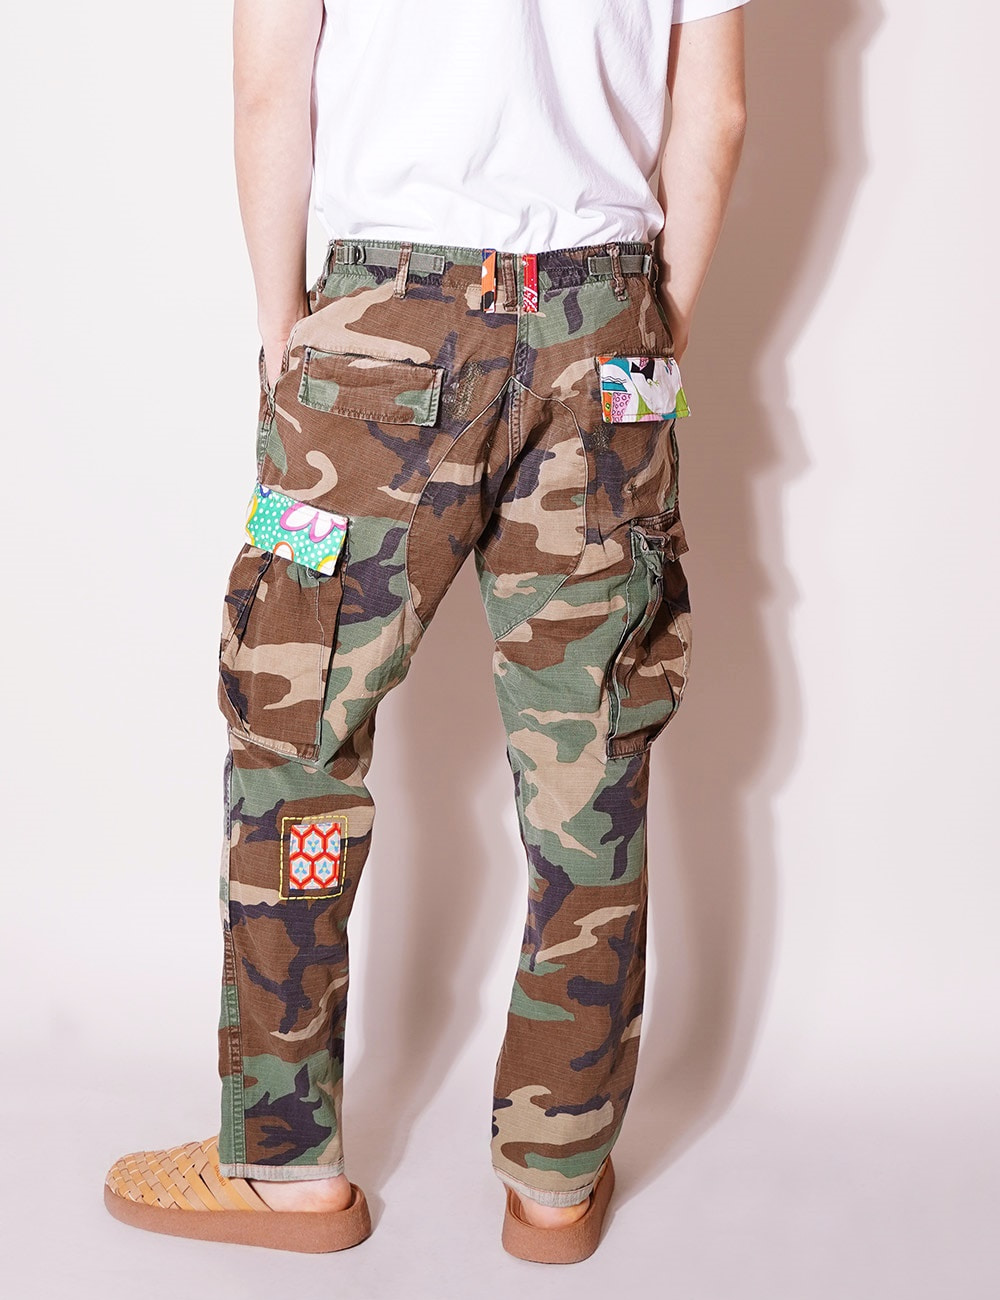 ATELIER & REPAIRS : CAMO CARGO PANT ON LSD (SIZE 34)  - A Type